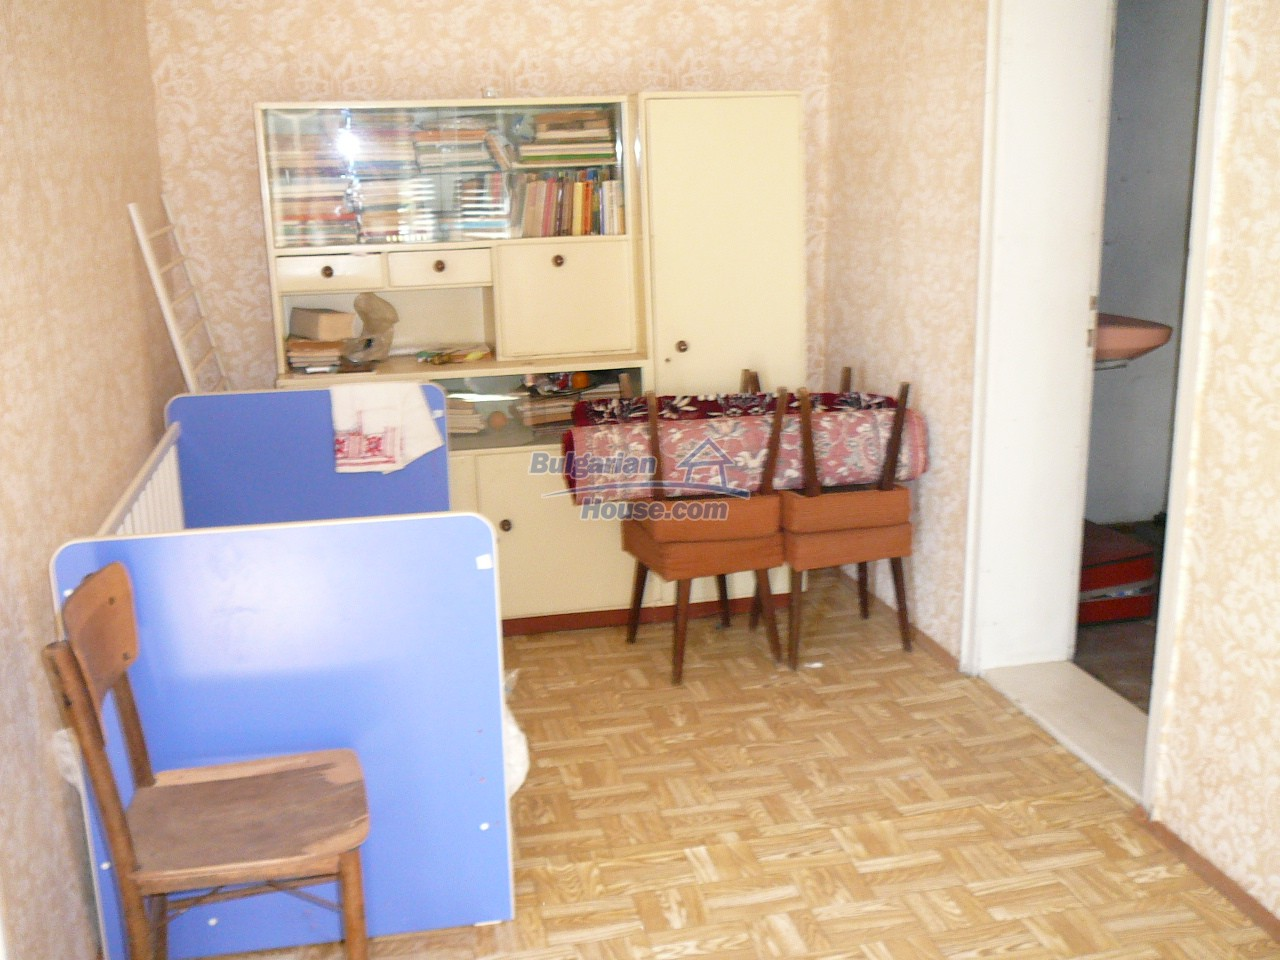 12527:27 - House  in good condition Stara Zagora region 55km to Plovdiv